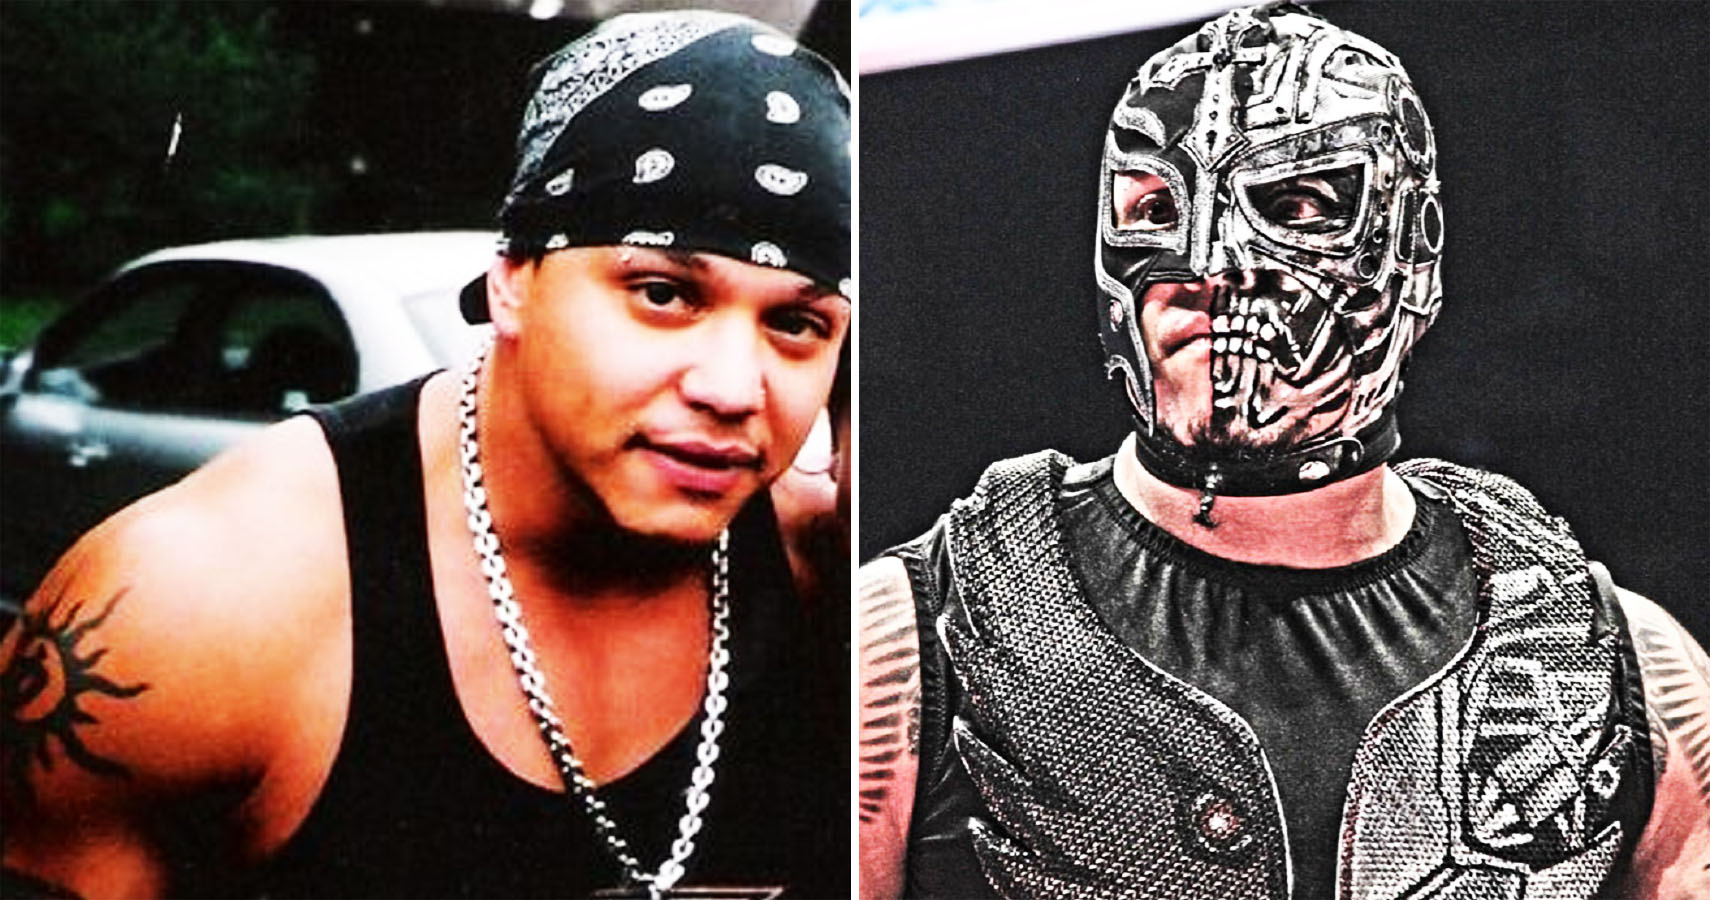 Unmasked: 15 Things You Didn't Know About Rey Mysterio